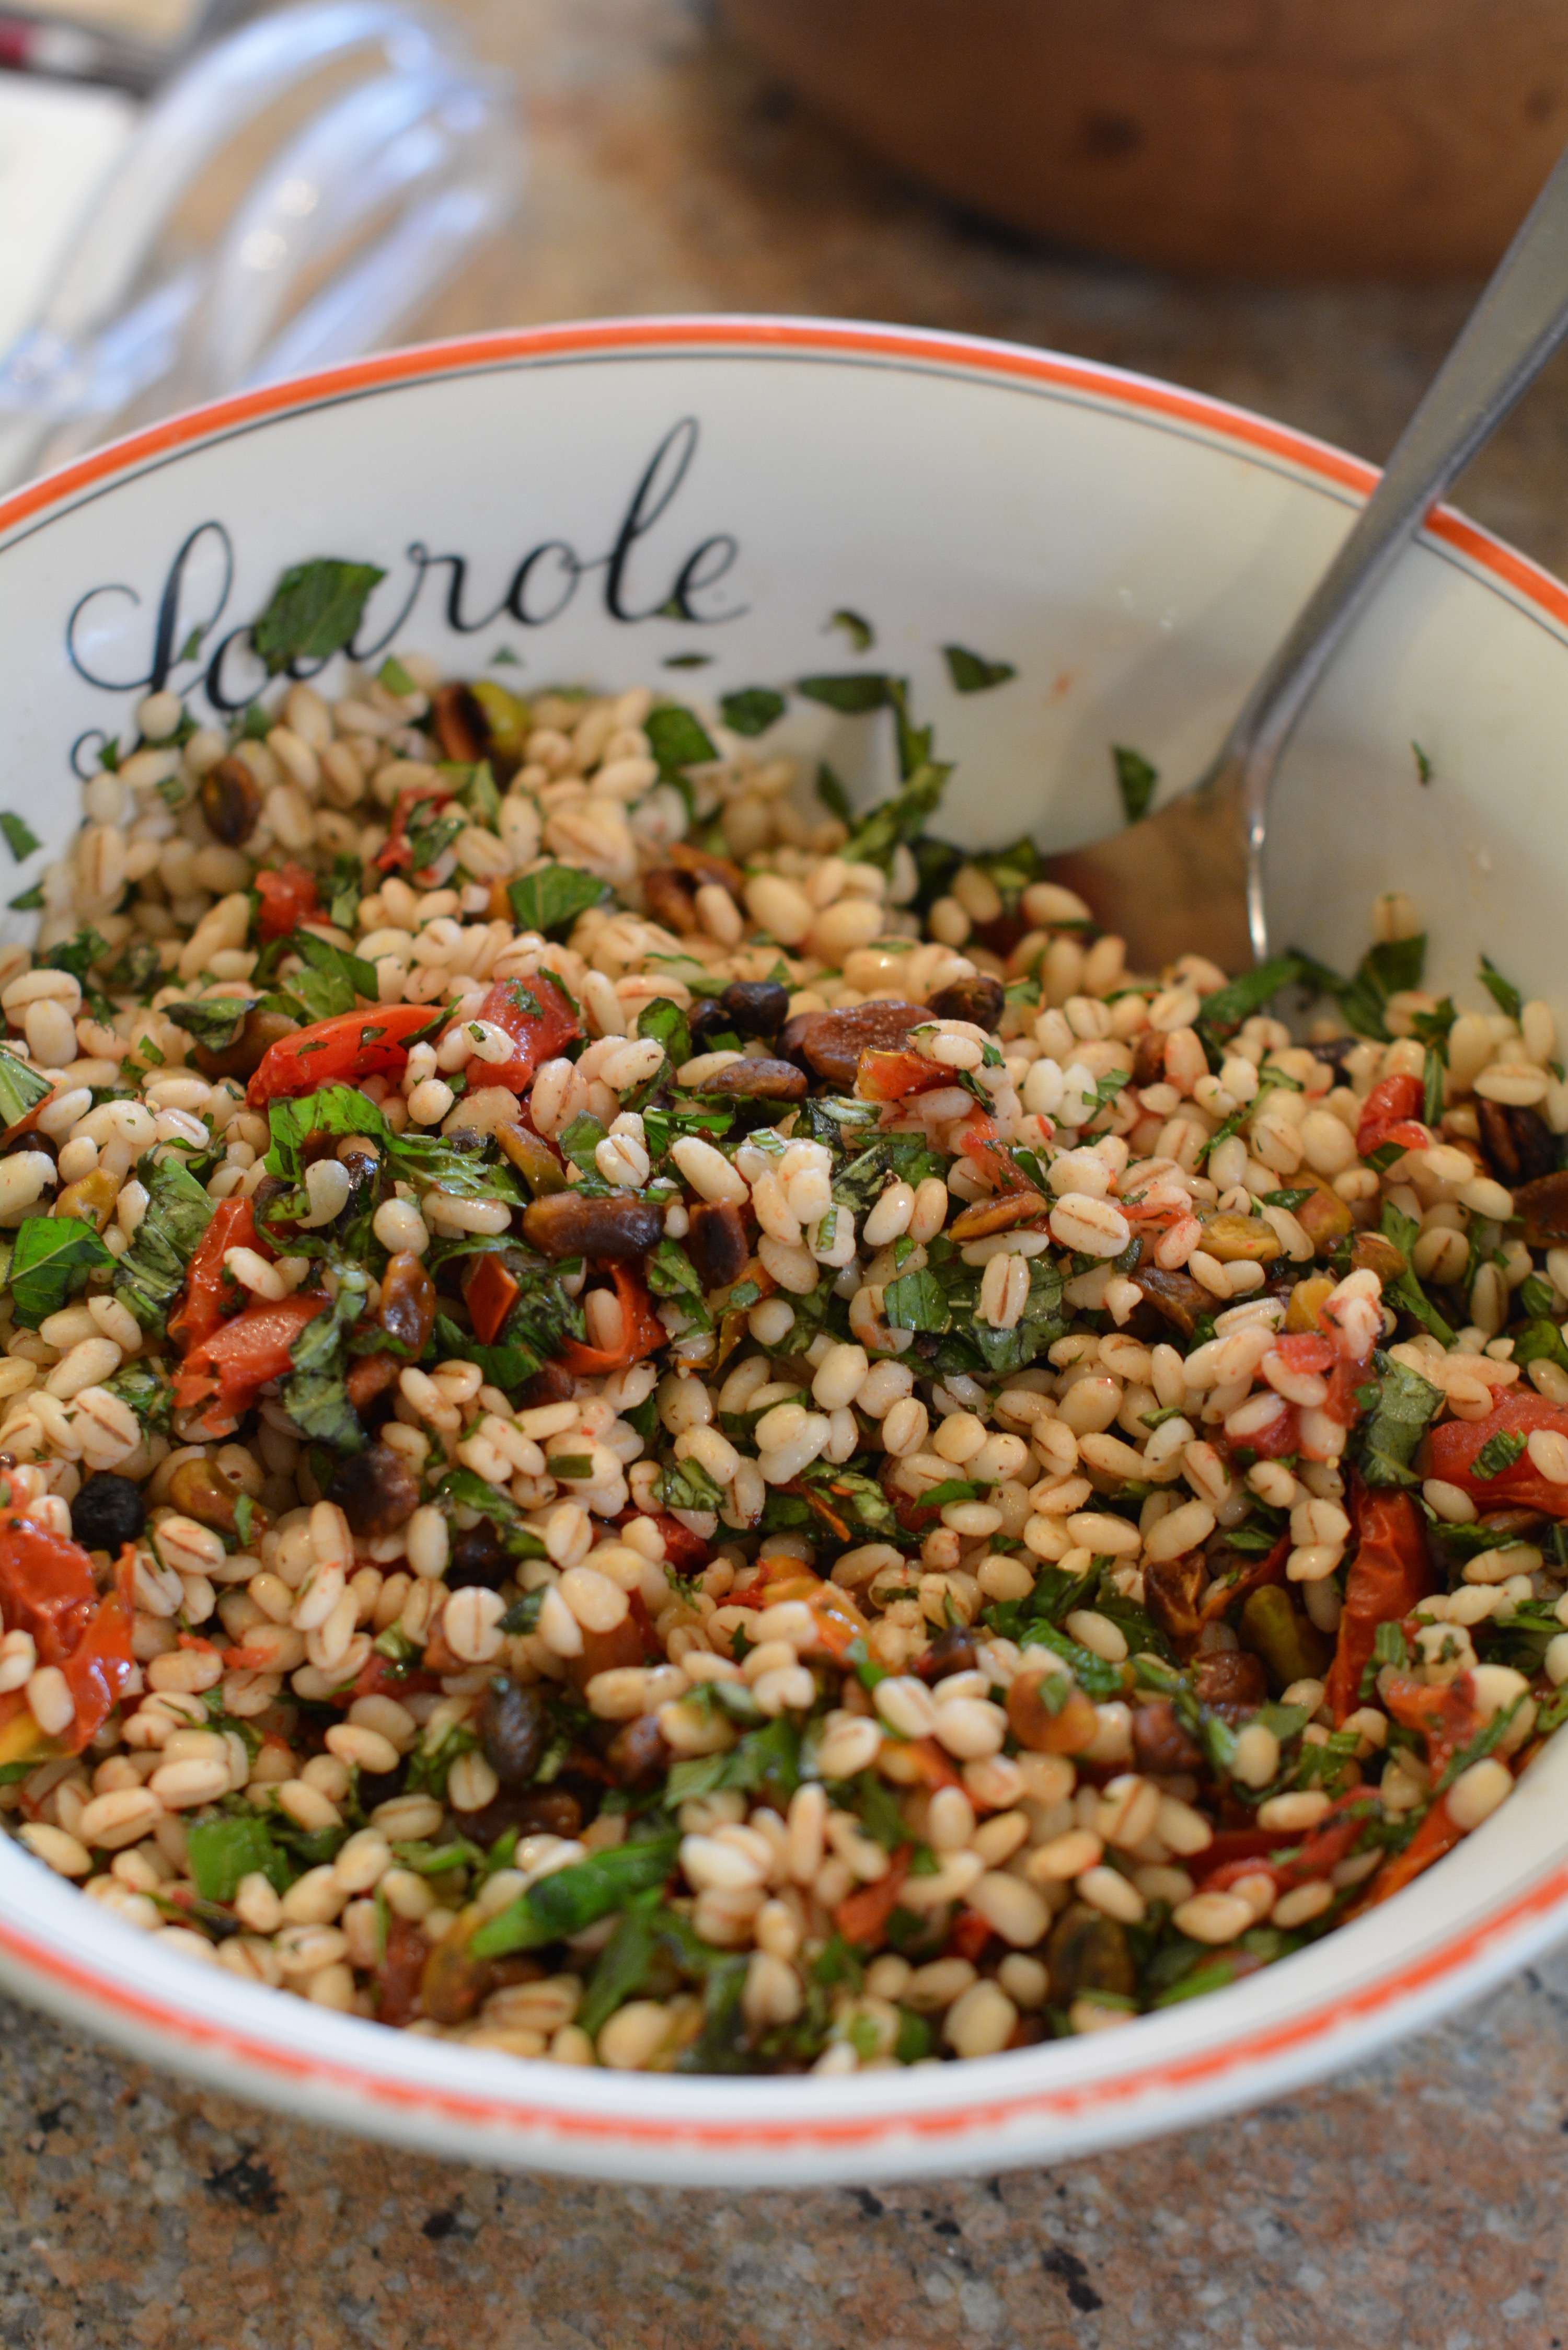 Slow-Roasted Tomato, Farro & Pistachio Salad